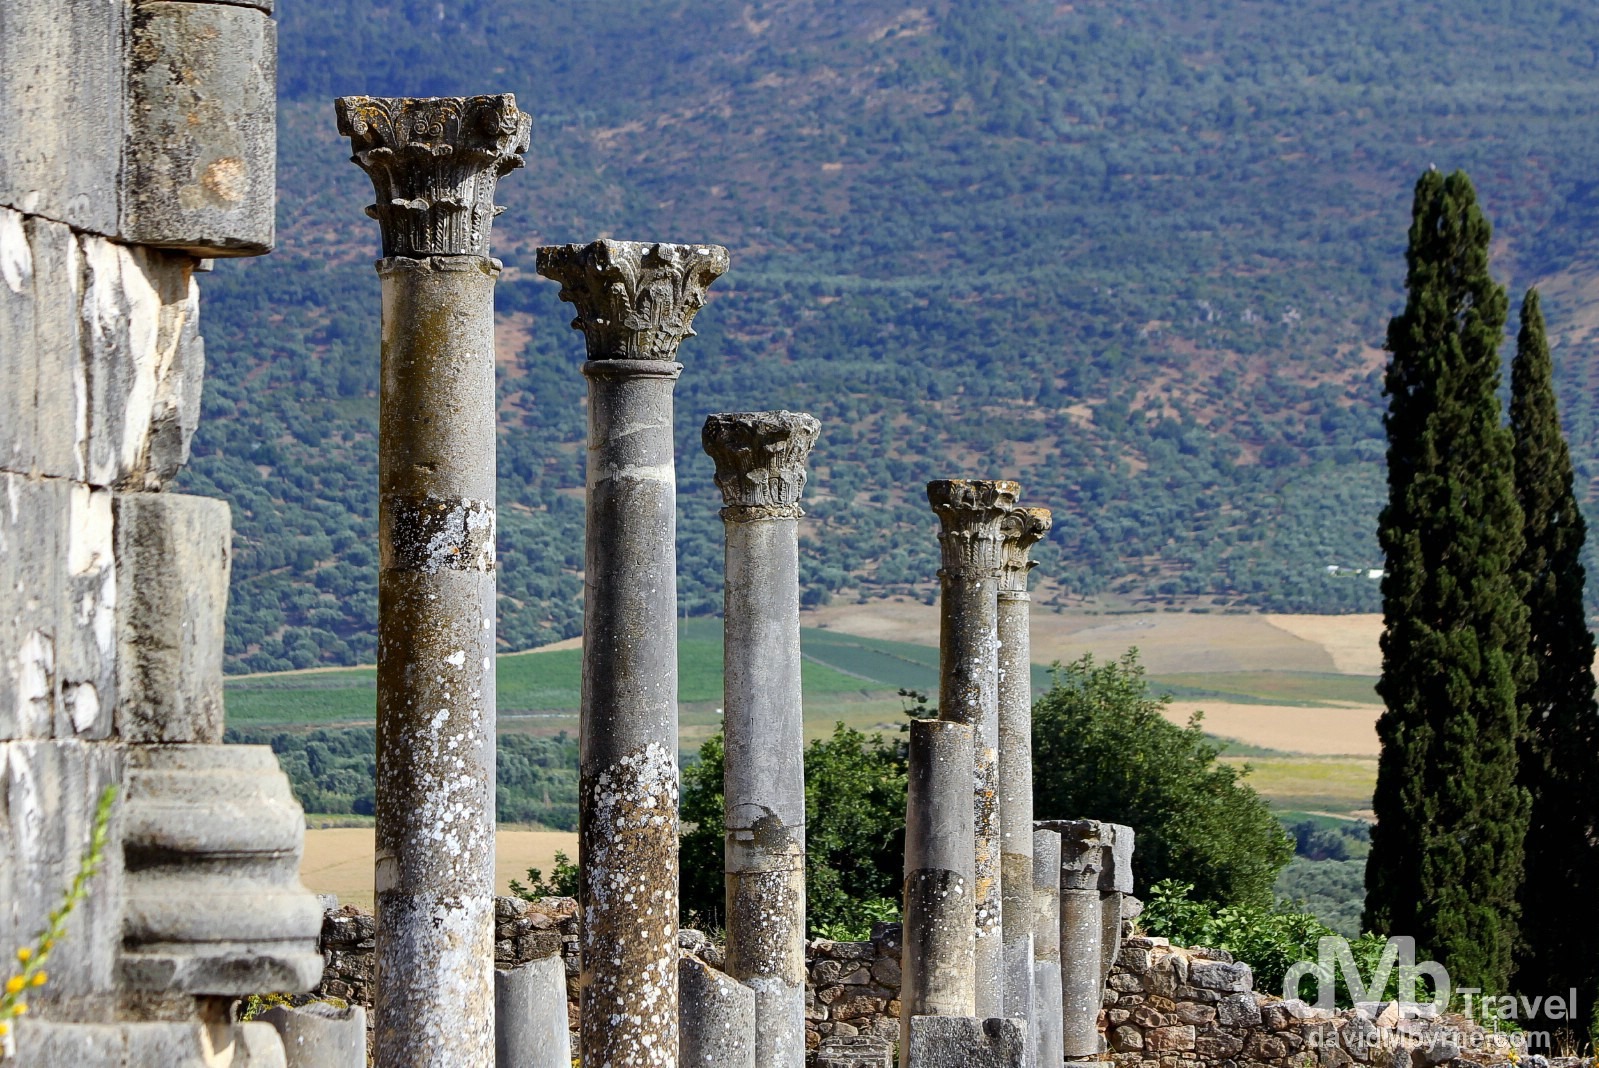 Columns of the UNESCO-listed Roman ruins of Volubilis, Morocco. May 25th, 2014.